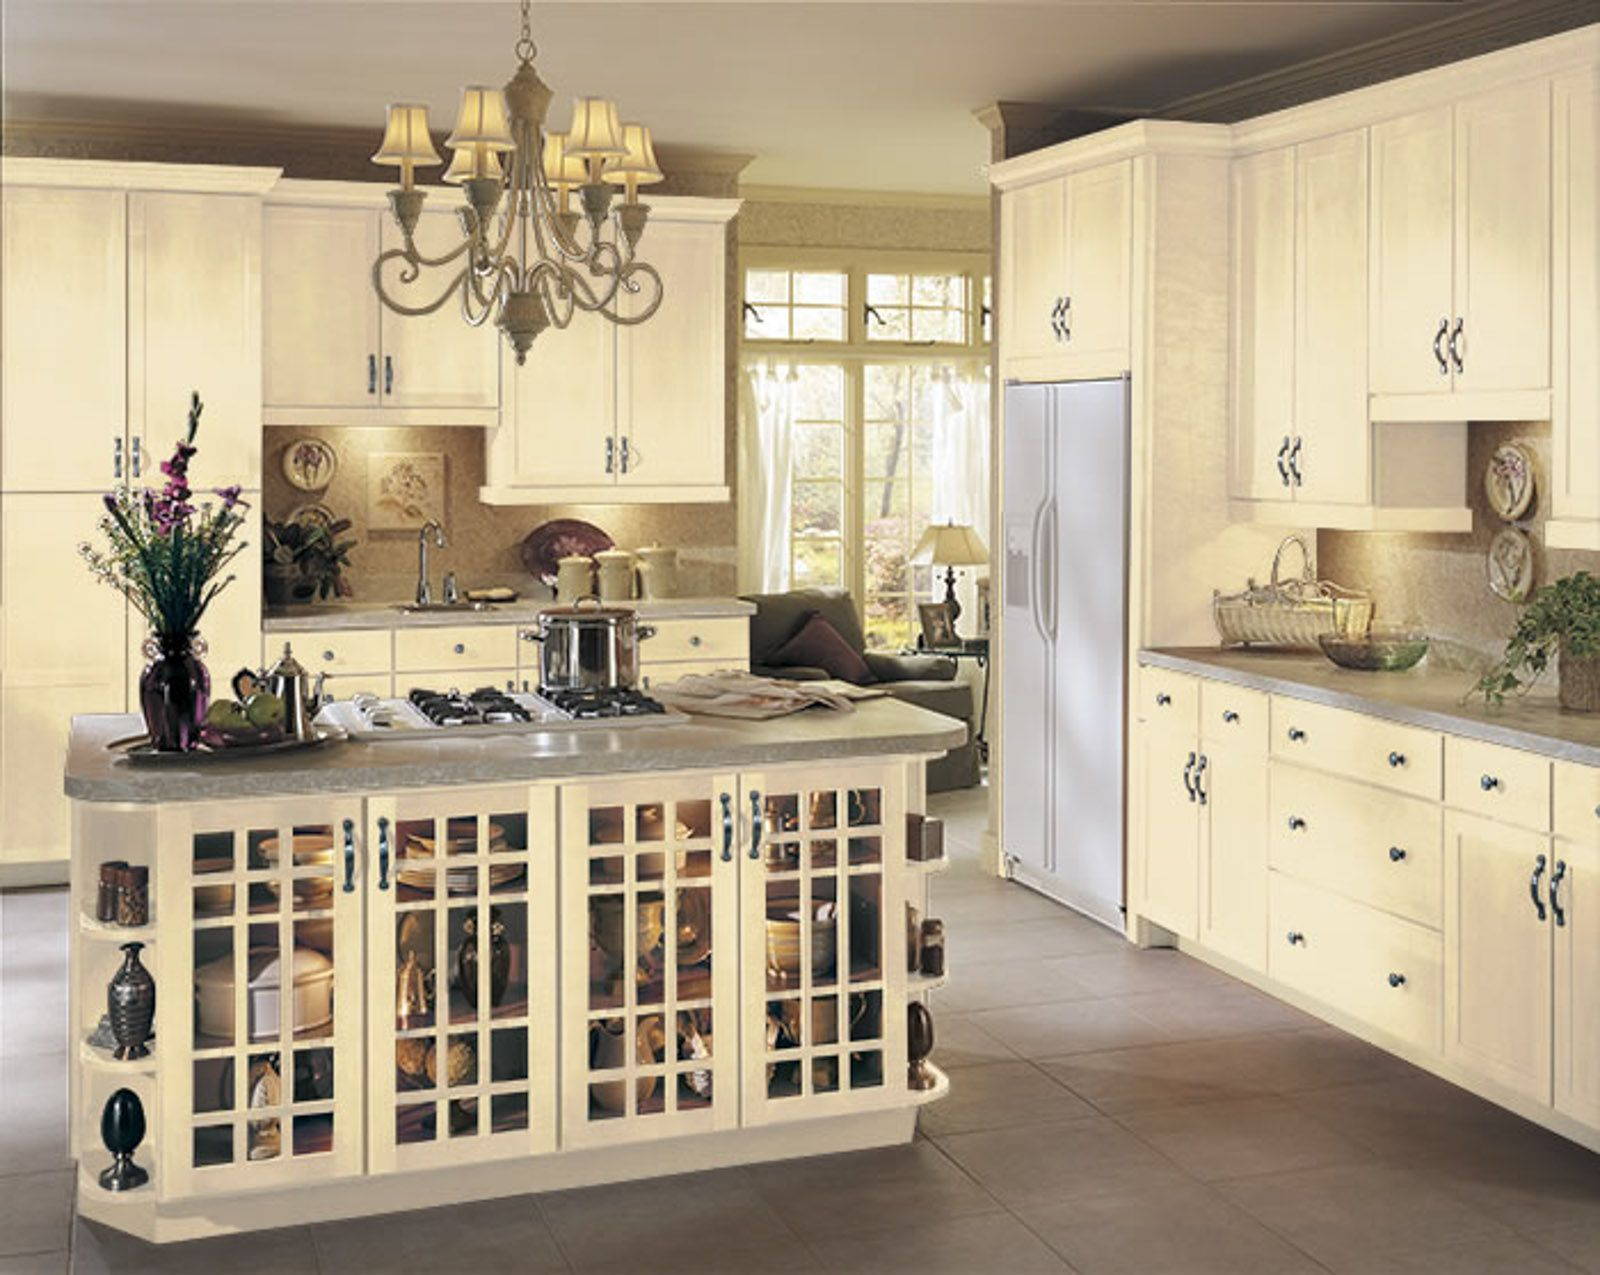 Vanilla Cream Armstrong Echelon Ascent Rossiter Kitchen Remodel Cabinet Kitchen